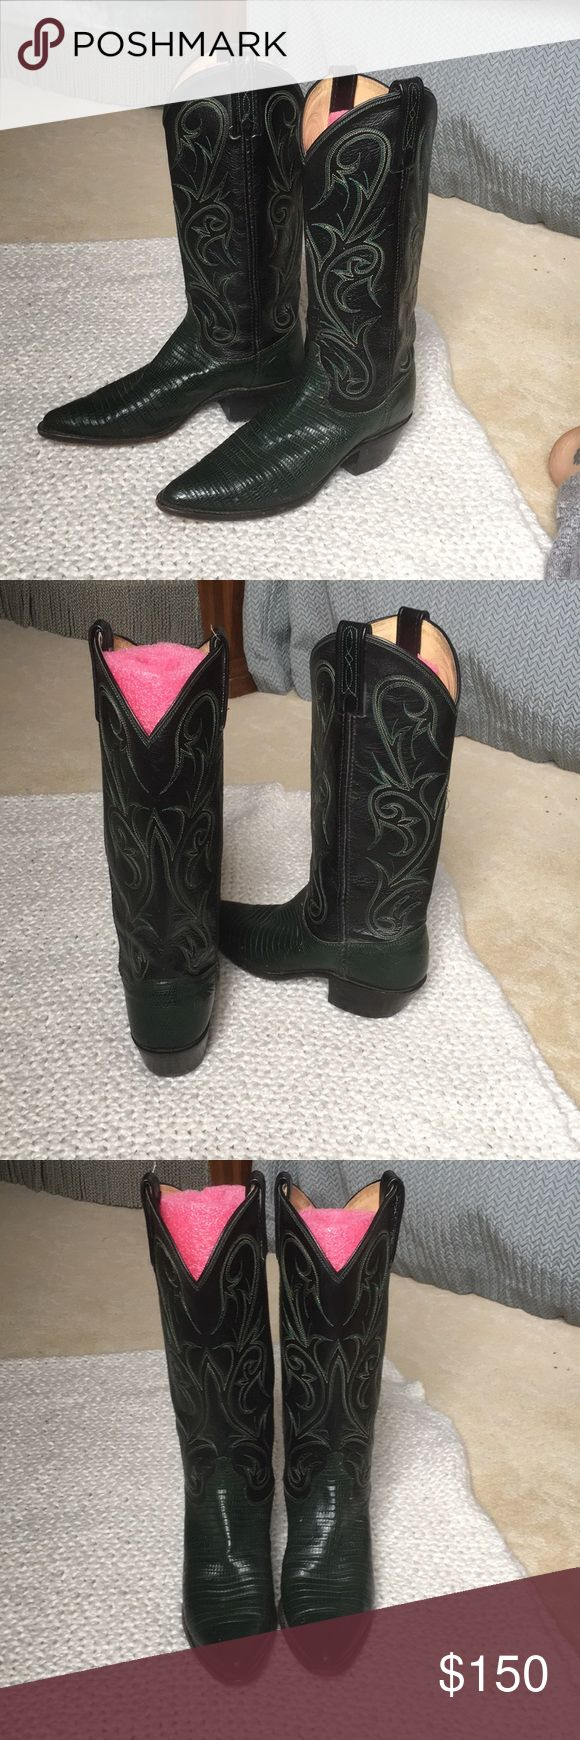 Snakeskin Cowboy Boots Great condition women's cowboy boots! Hardly worn, super edgy and cool. Dan Post Shoes Heeled Boots